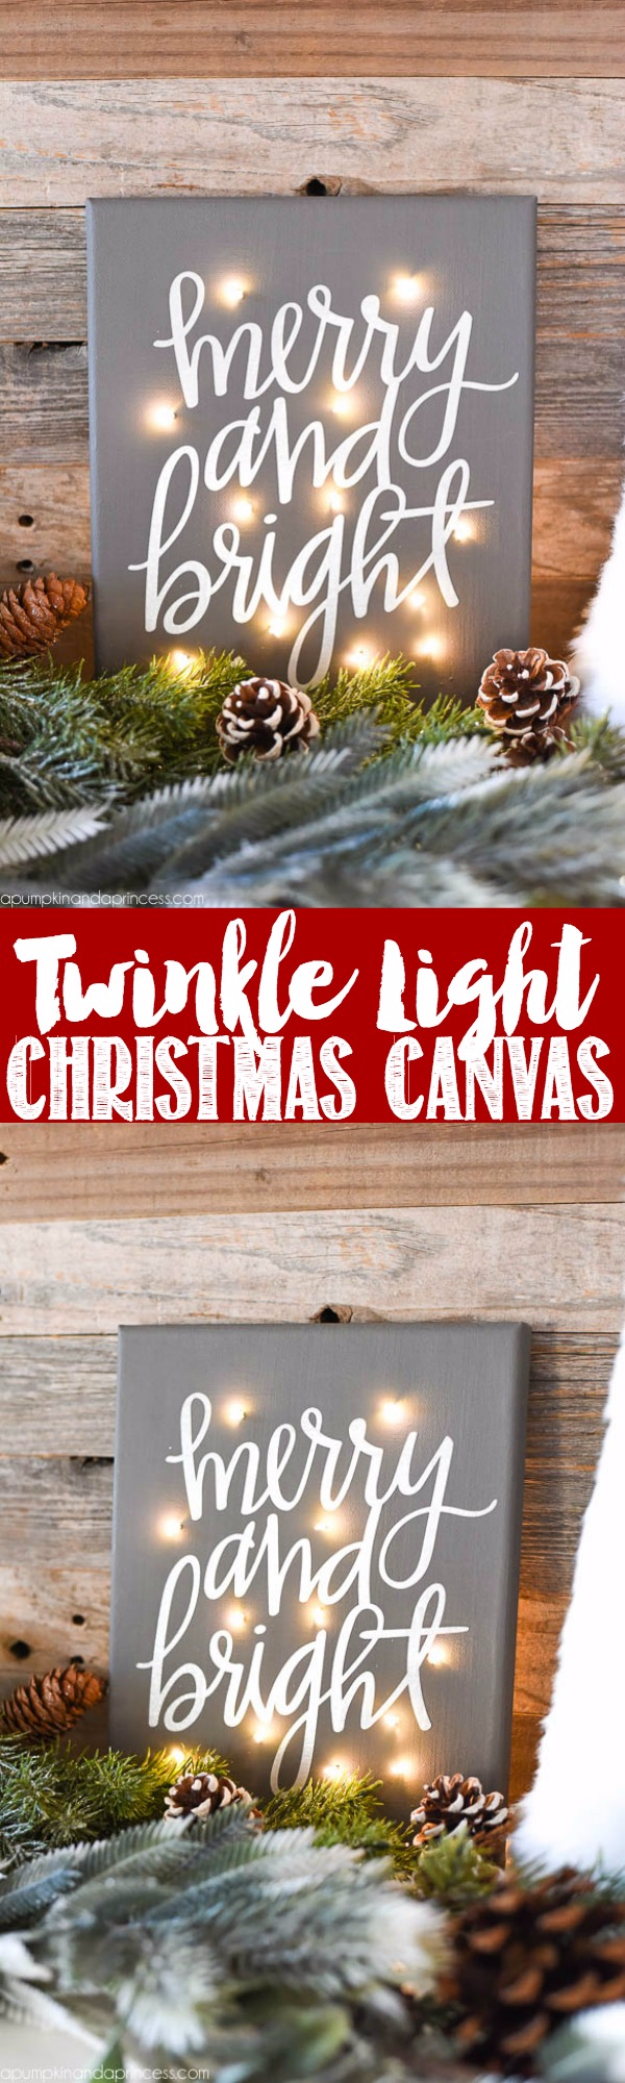 Cool Ways To Use Christmas Lights - DIY Twinkle Light Christmas Canvas - Best Easy DIY Ideas for String Lights for Room Decoration, Home Decor and Creative DIY Bedroom Lighting - Creative Christmas Light Tutorials with Step by Step Instructions - Creative Crafts and DIY Projects for Teens and Adults http://diyjoy.com/cool-ways-to-use-christmas-lights